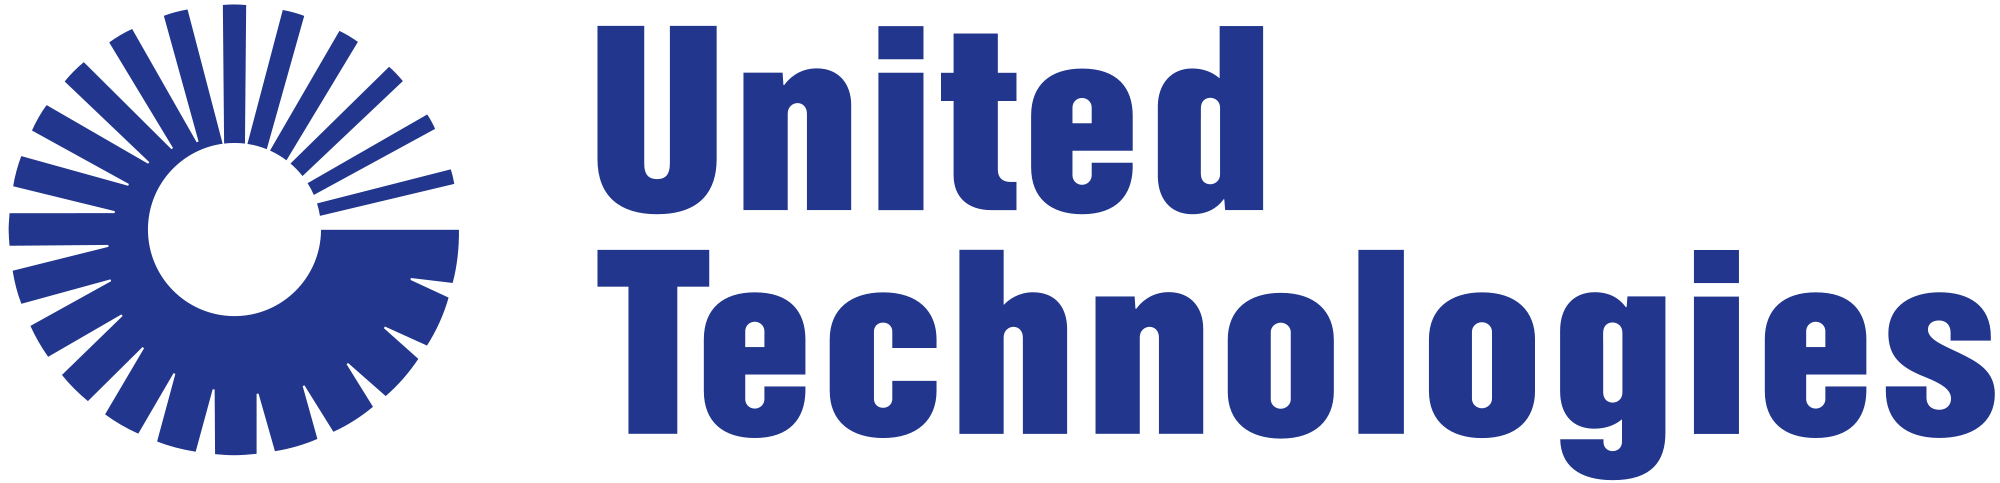 Http Www Ct Org Wp Content Uploads 2013 08 United Technologies Corporation Logo Png Technology Logo Industry Logo Technology